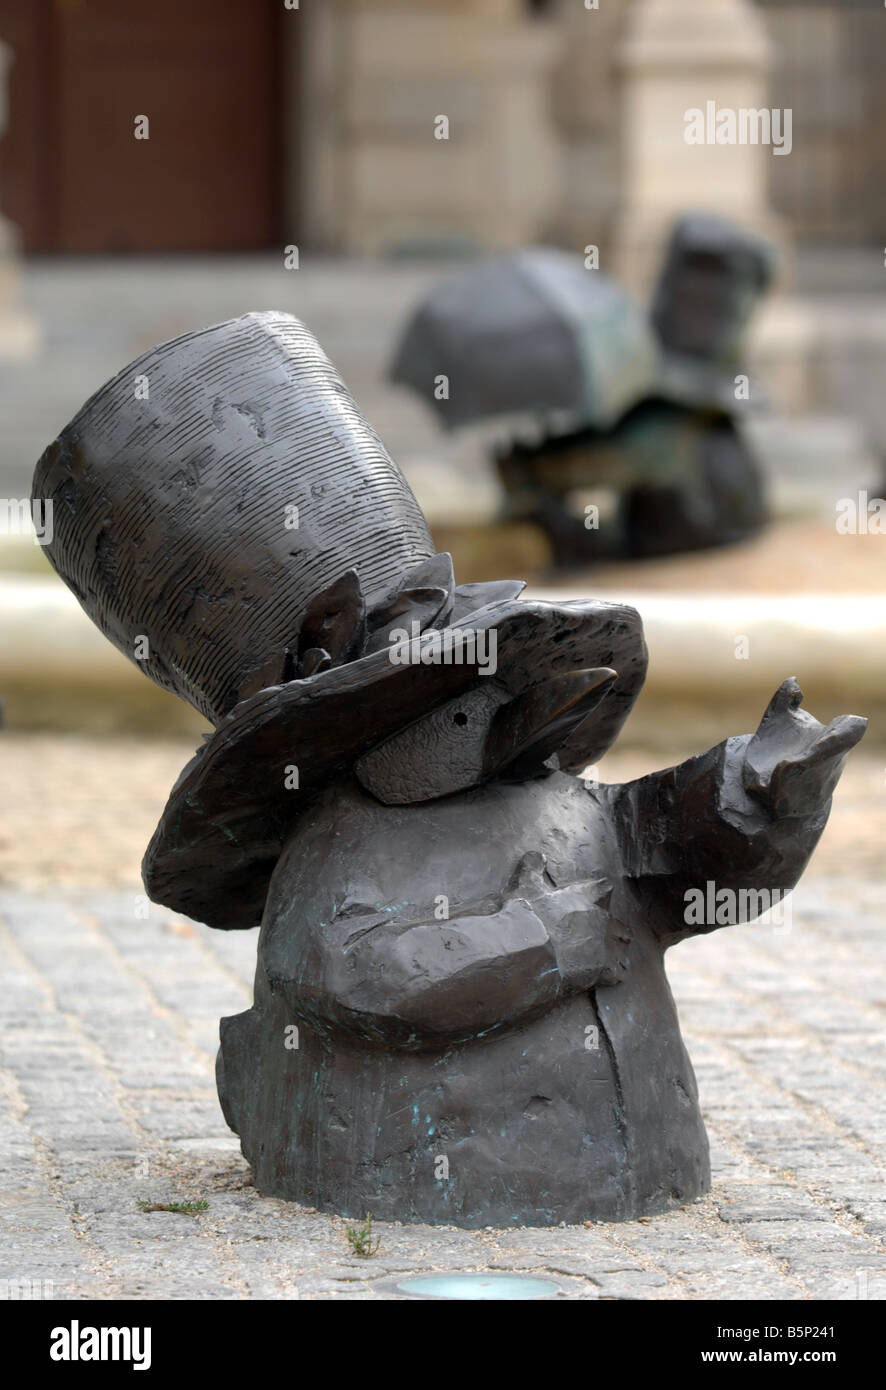 One of the many gnome statues around the city of Wroclaw, Poland - Stock Image